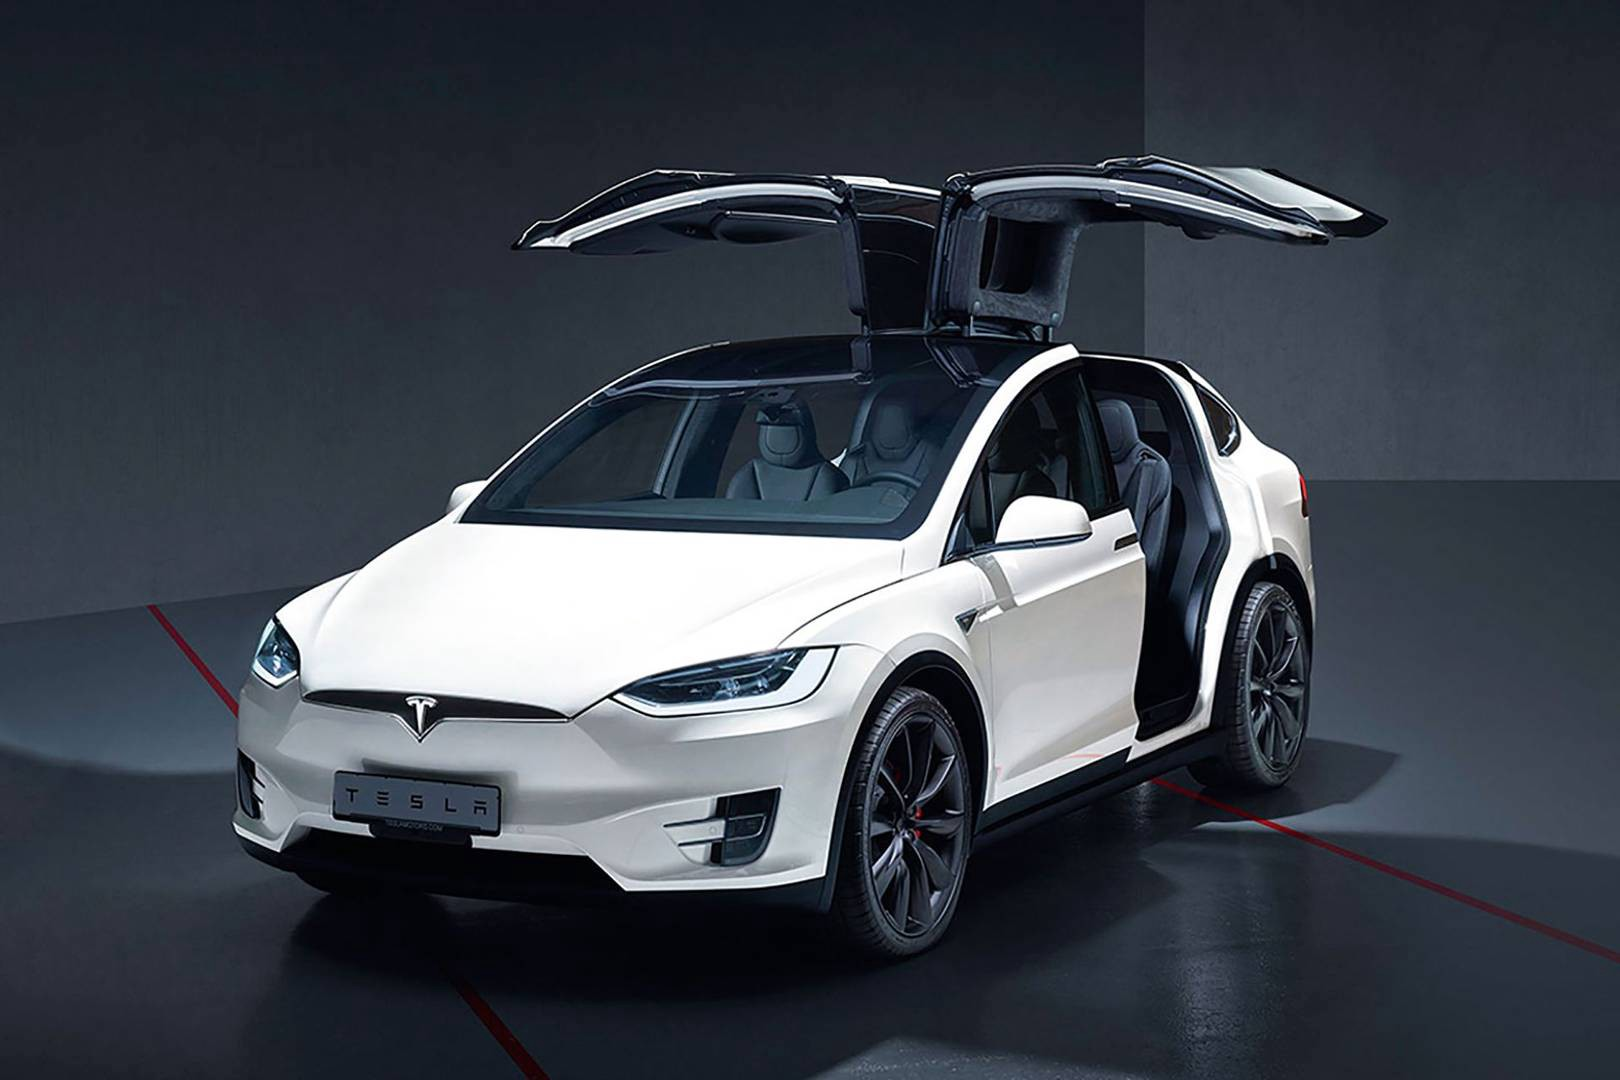 Youngest Tesla Model X Owner in the PH?- A 24-Year-Old Filipino